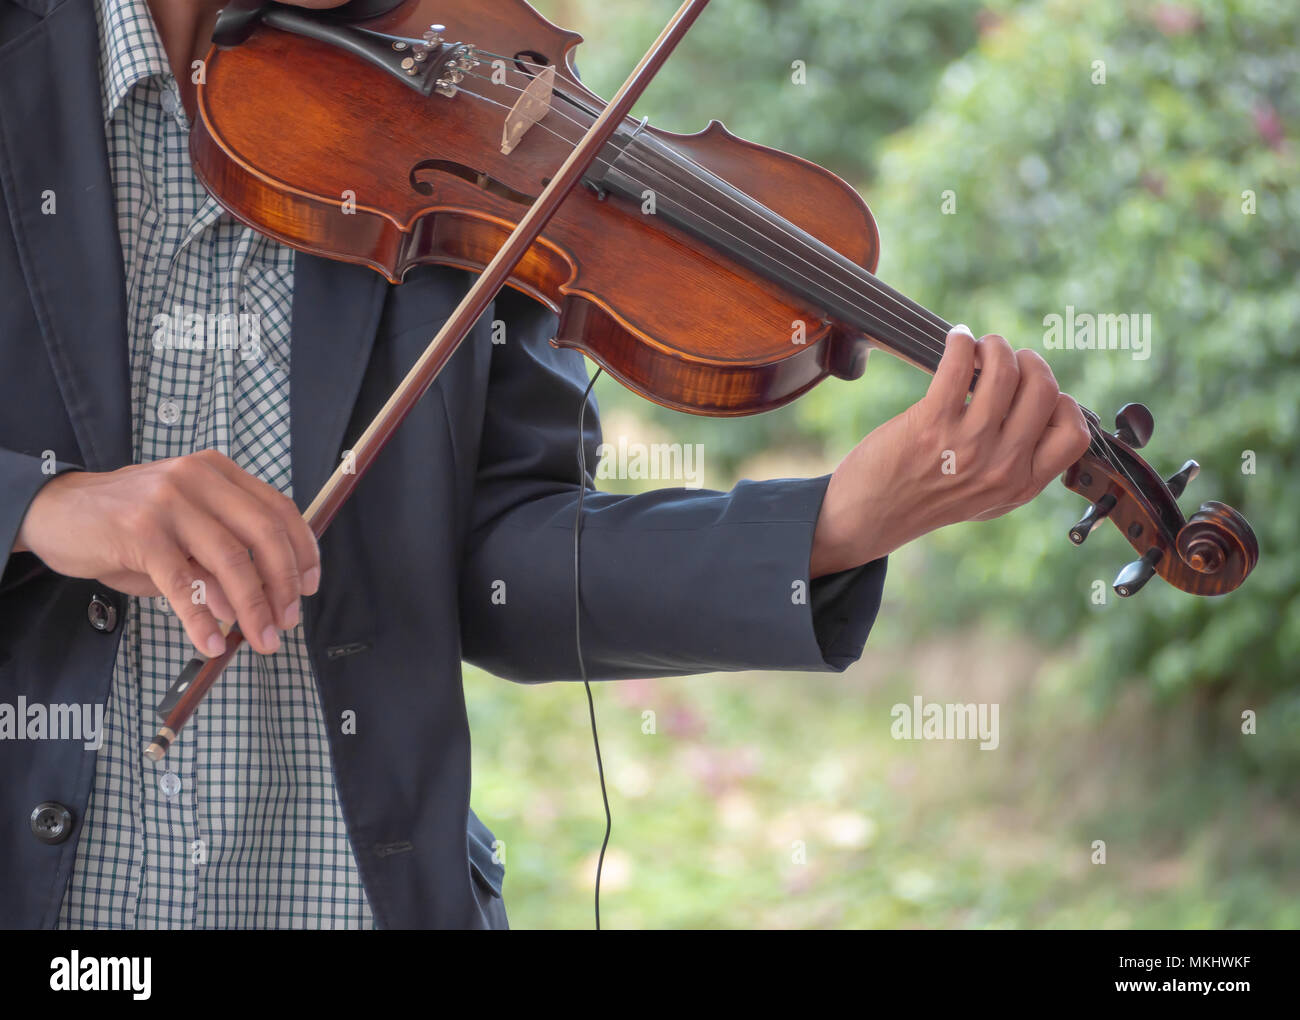 Hands of Musician Playing A Song with Violin in The Park Background - Stock Image